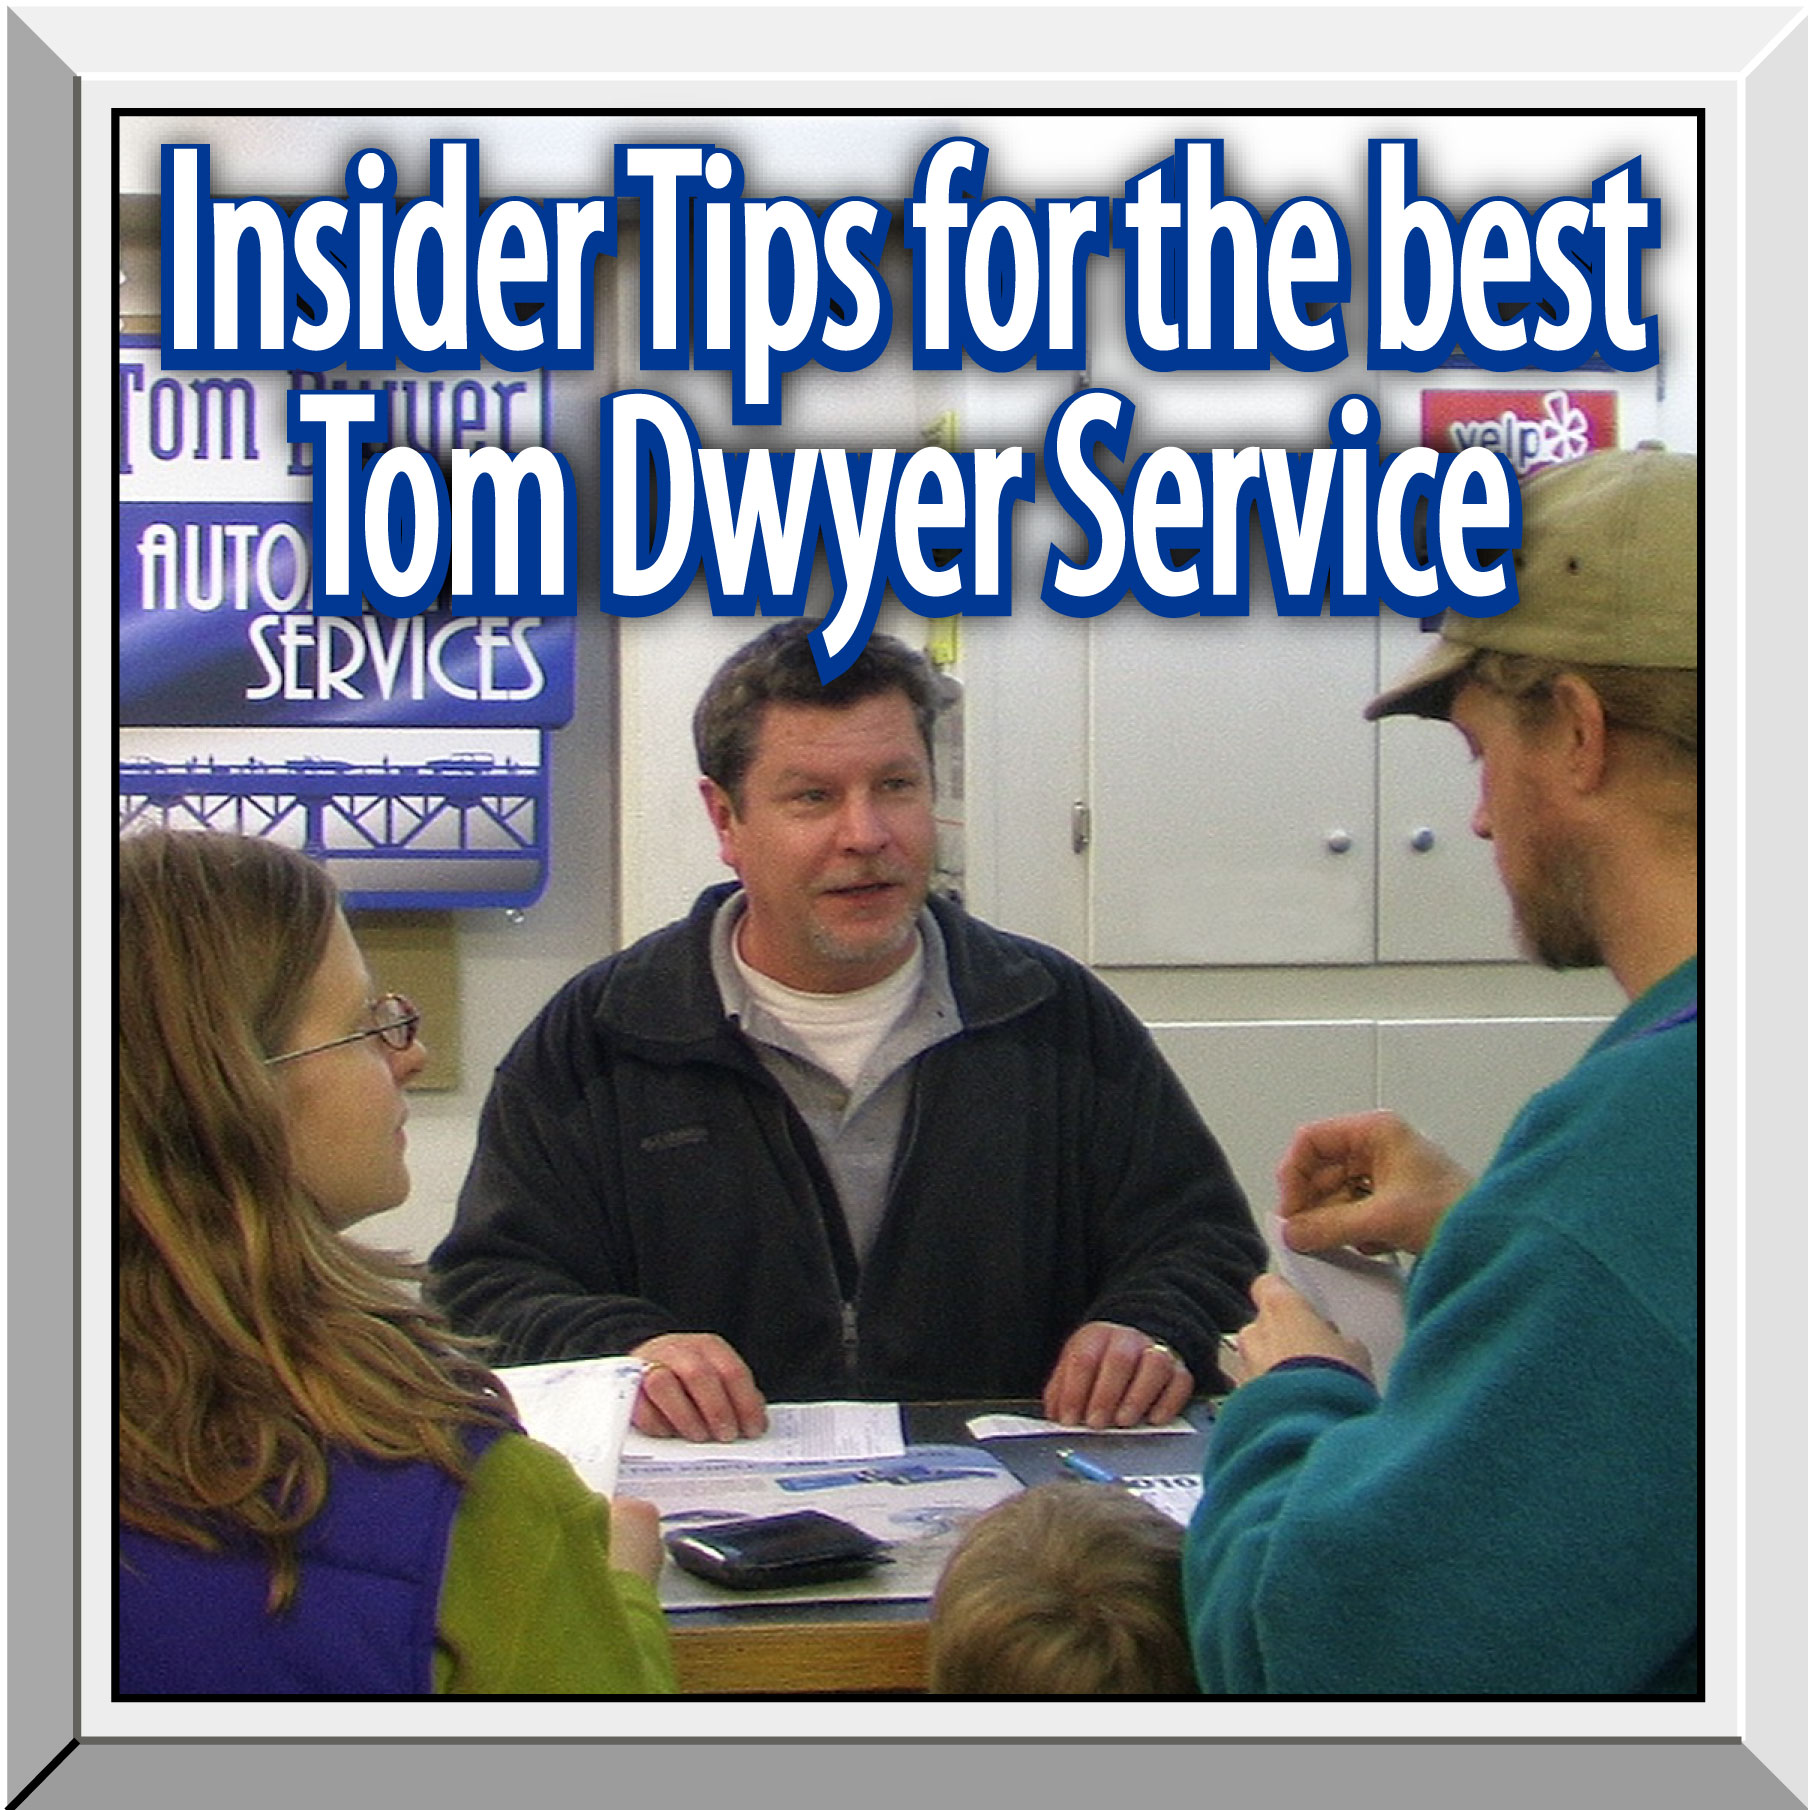 Feature- Insider tips